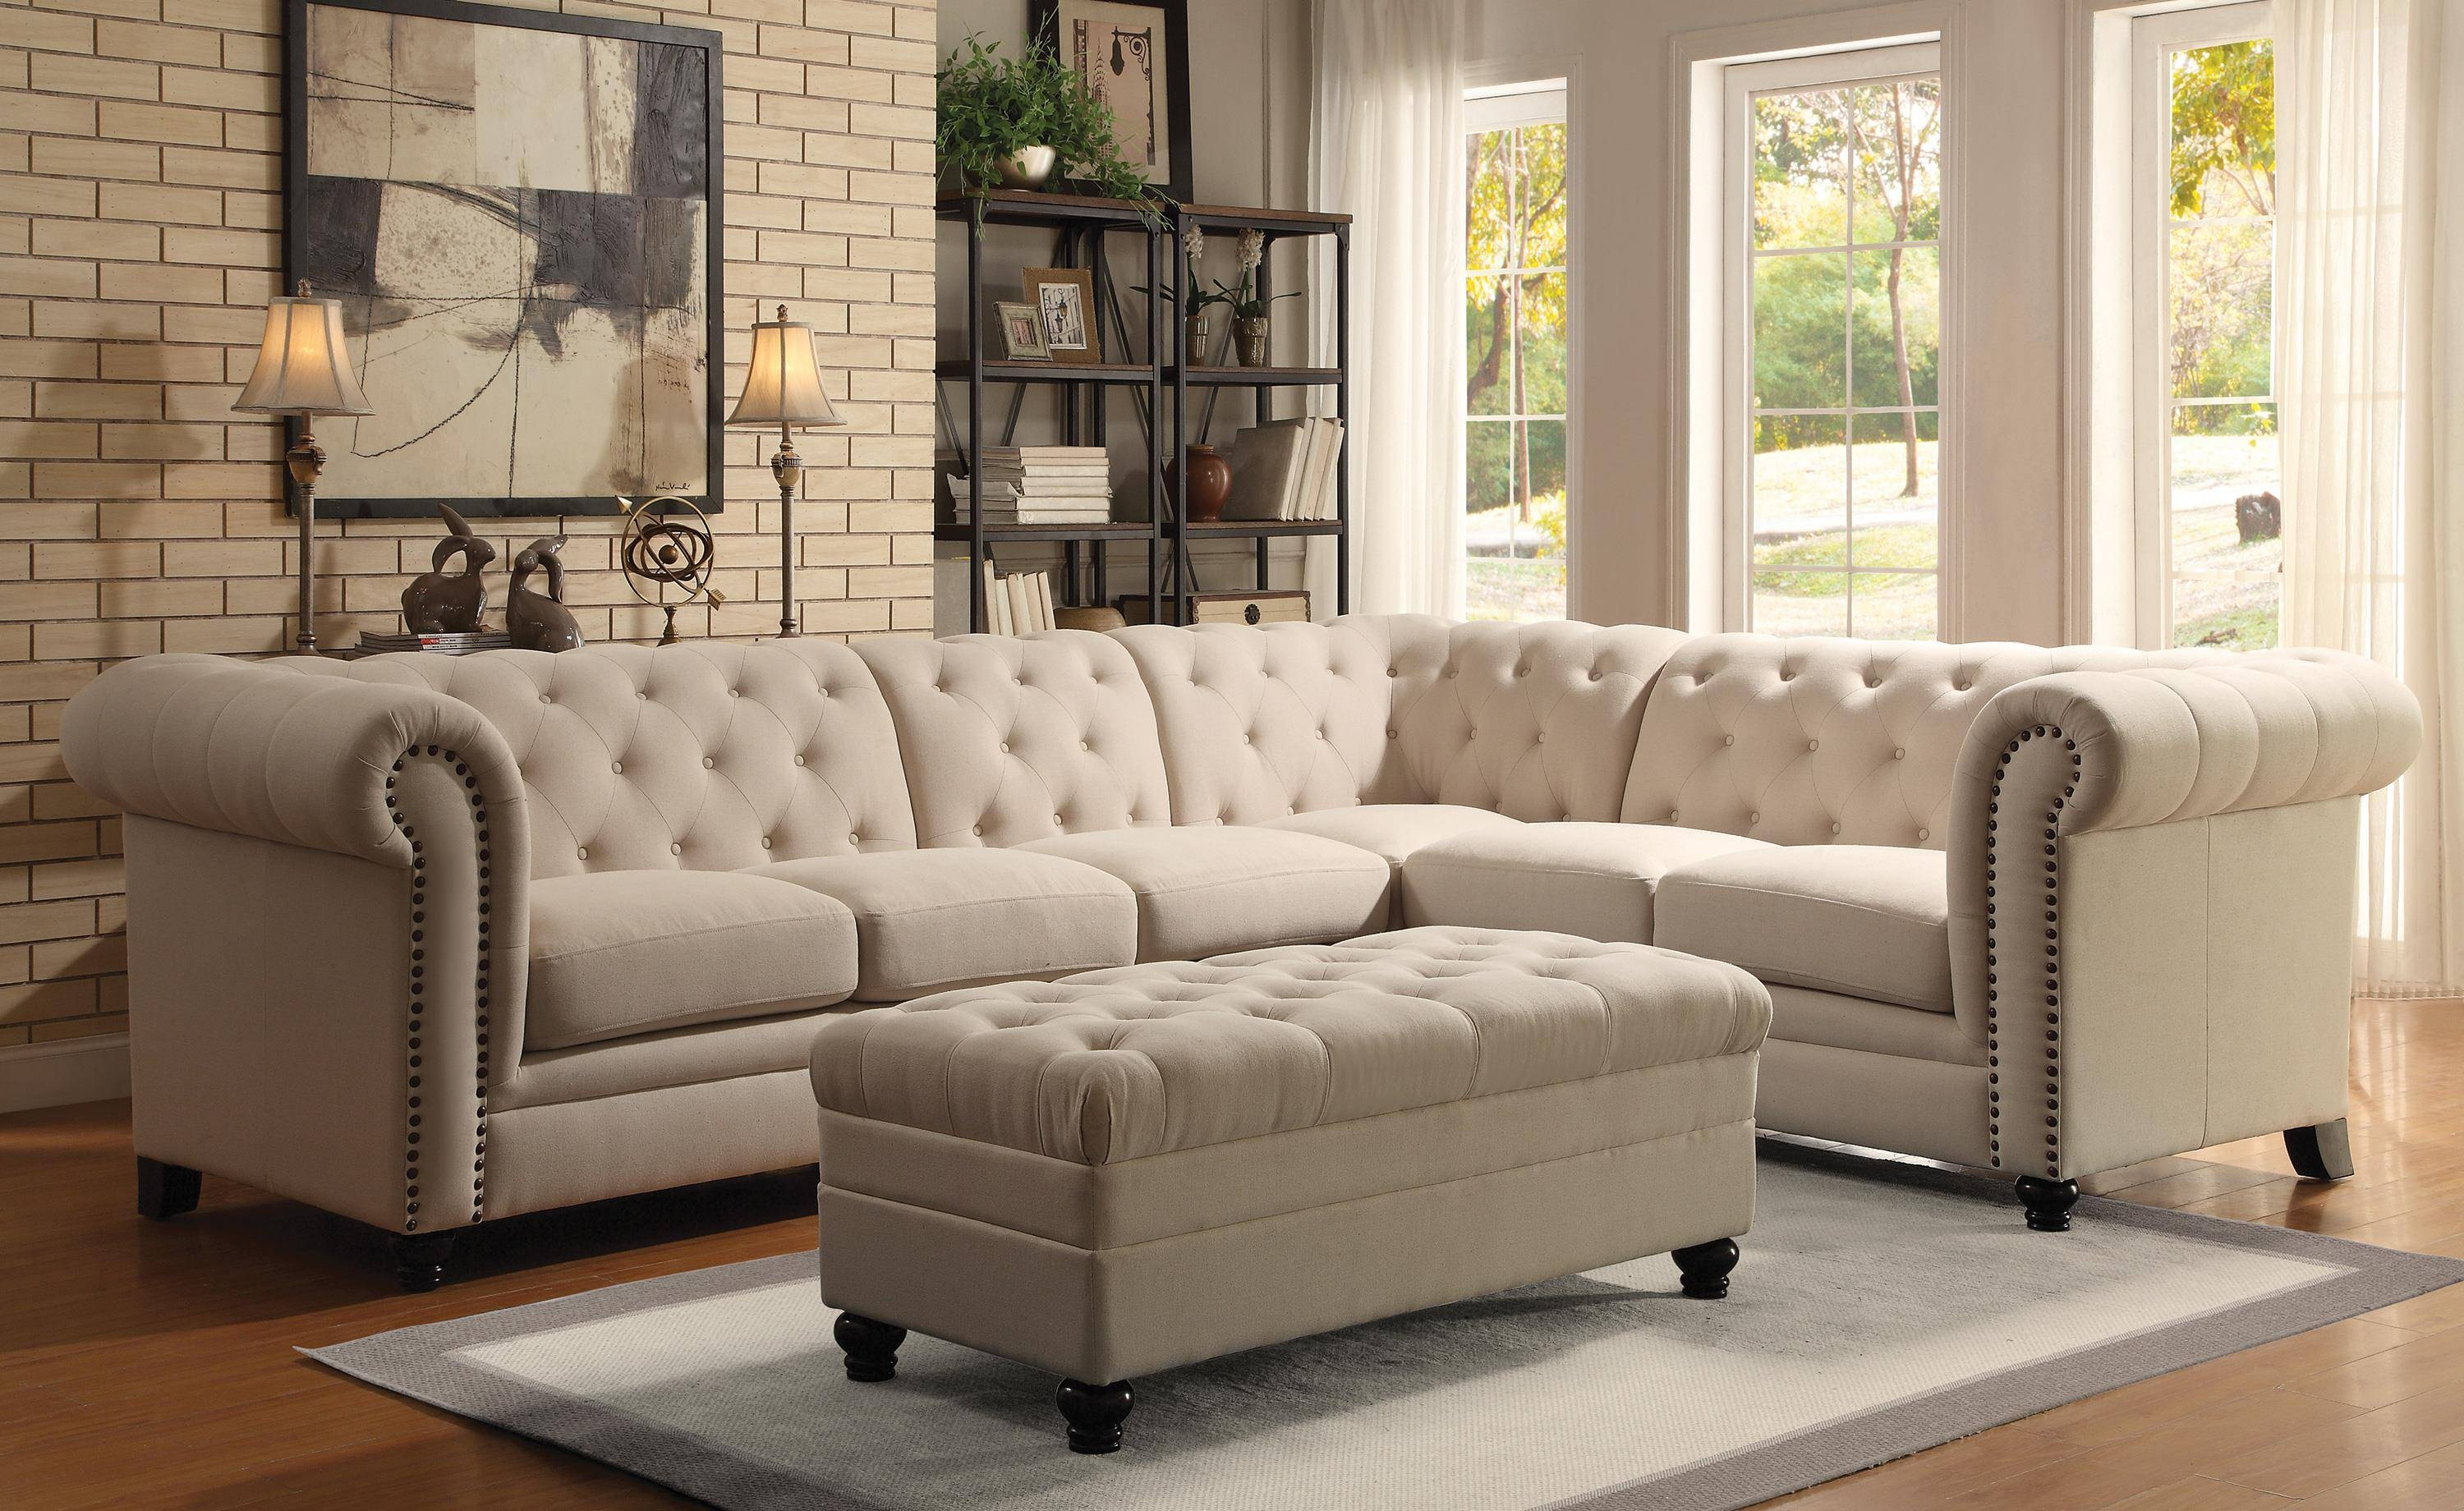 Sofa: Tufted Sectional Sofa With Chaise throughout Tufted Sectional Sofa With Chaise (Image 23 of 30)